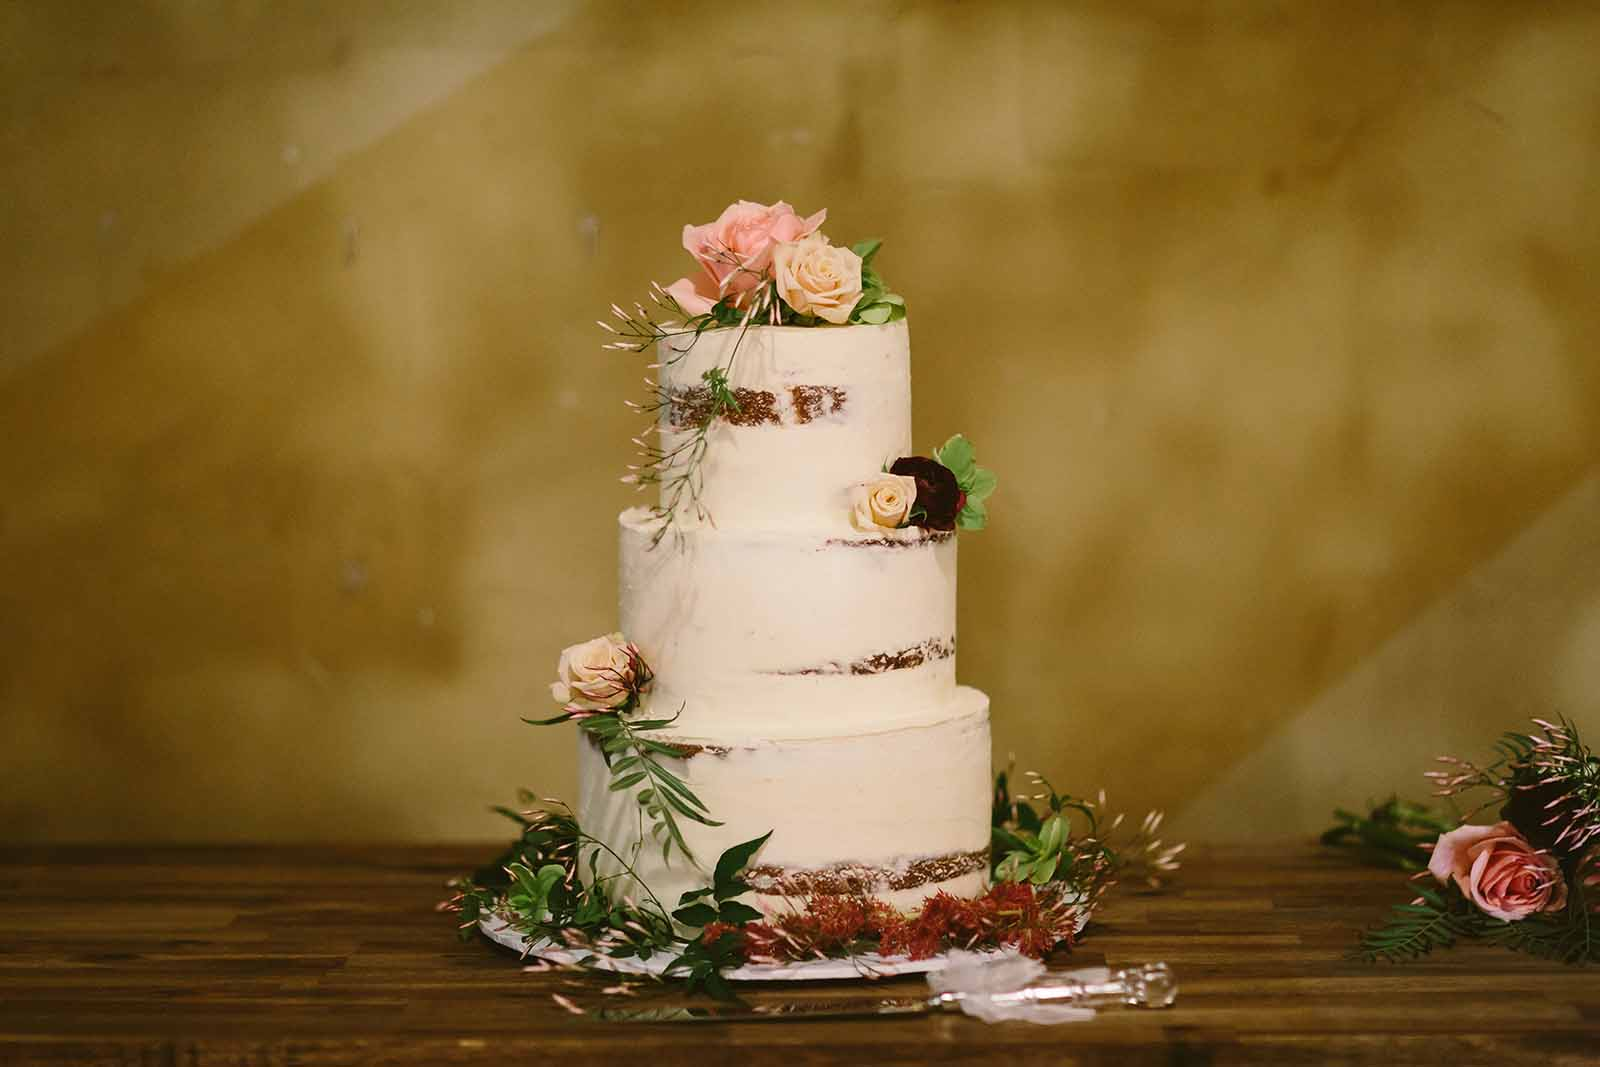 Project cake photo by Cavanagh Photography